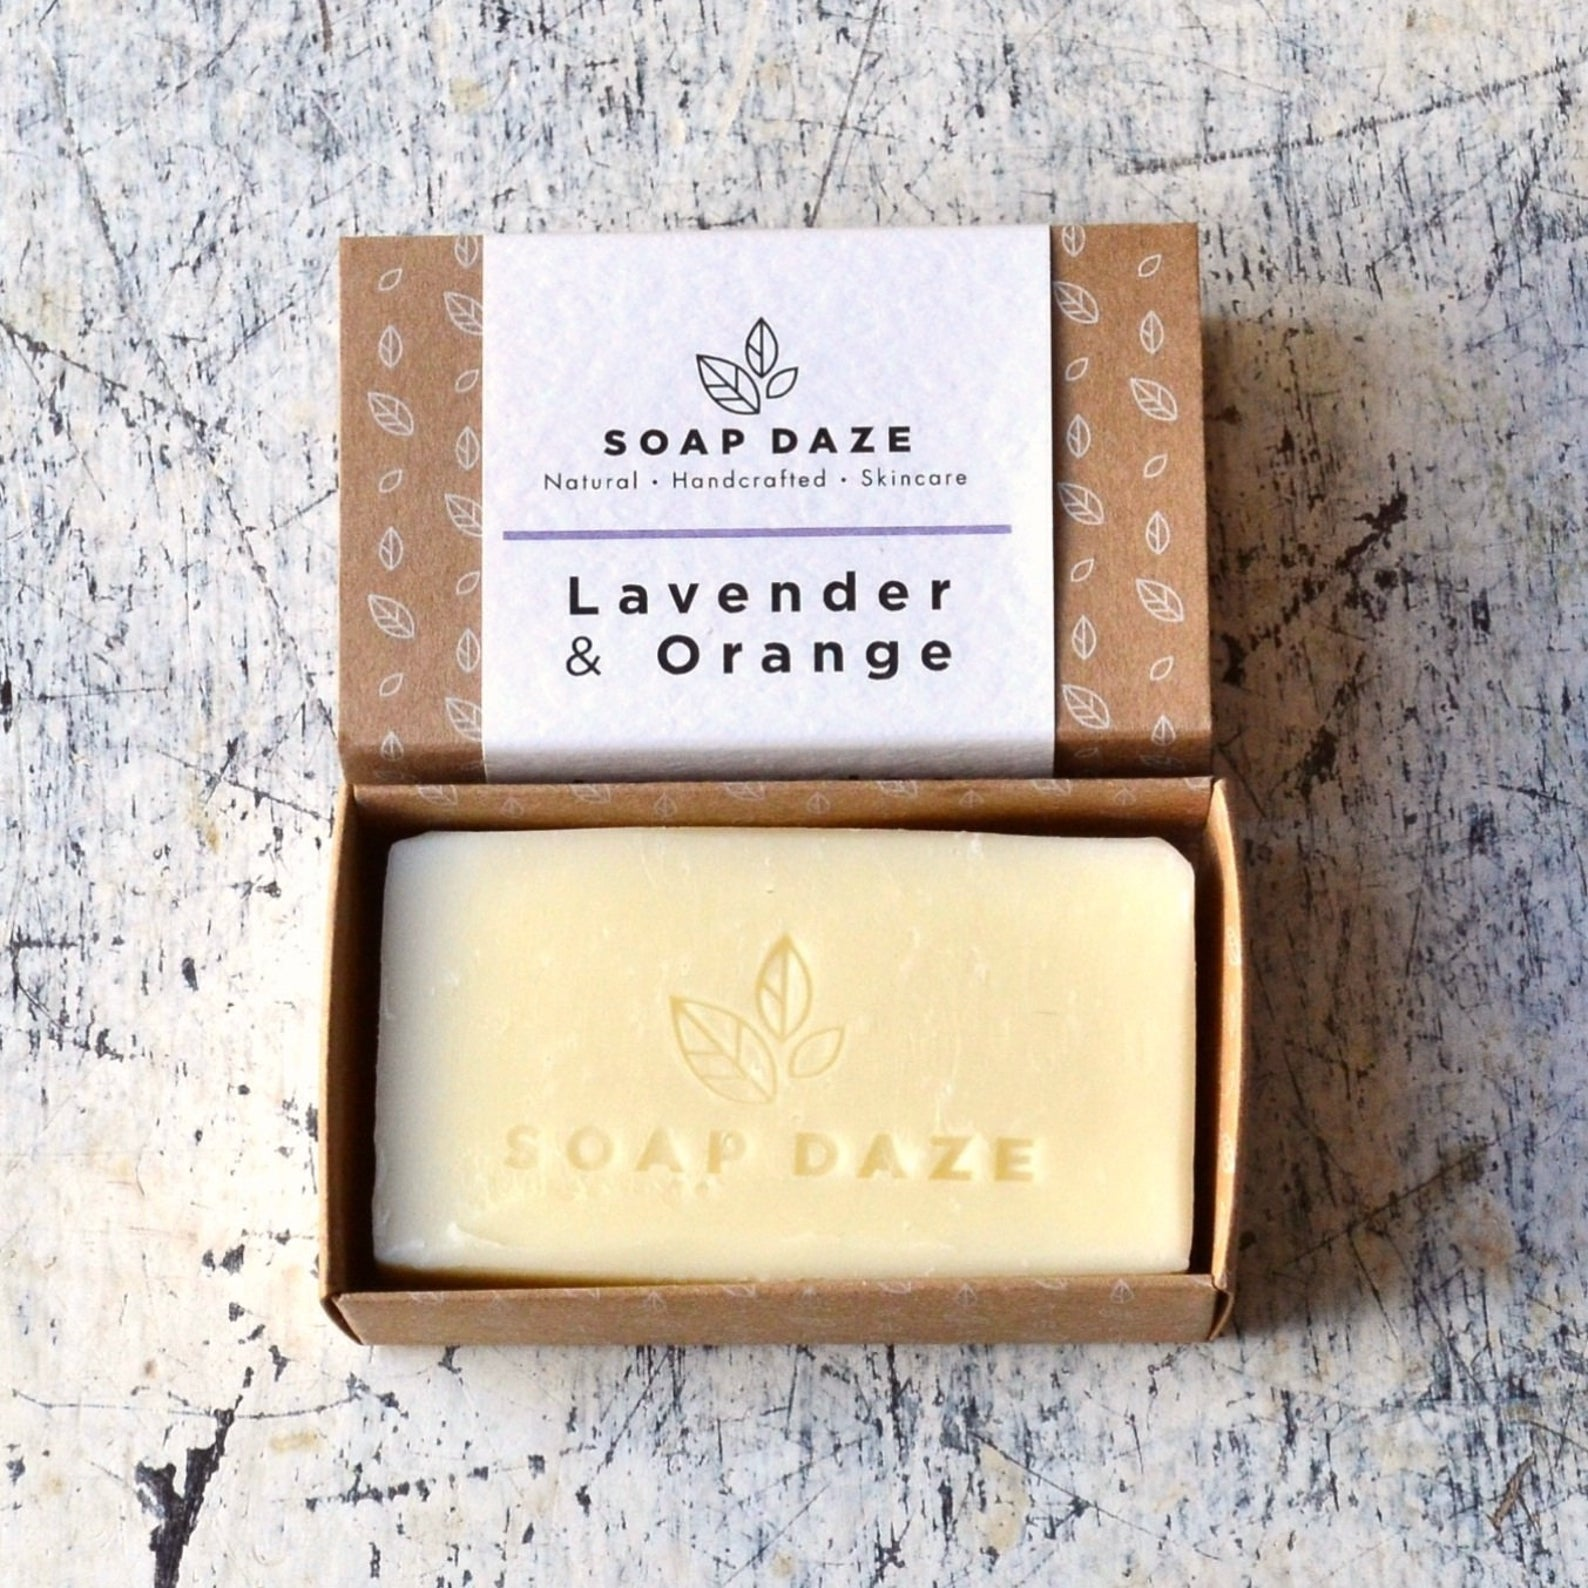 Lavender & Orange Soap (112g) - Beautykind